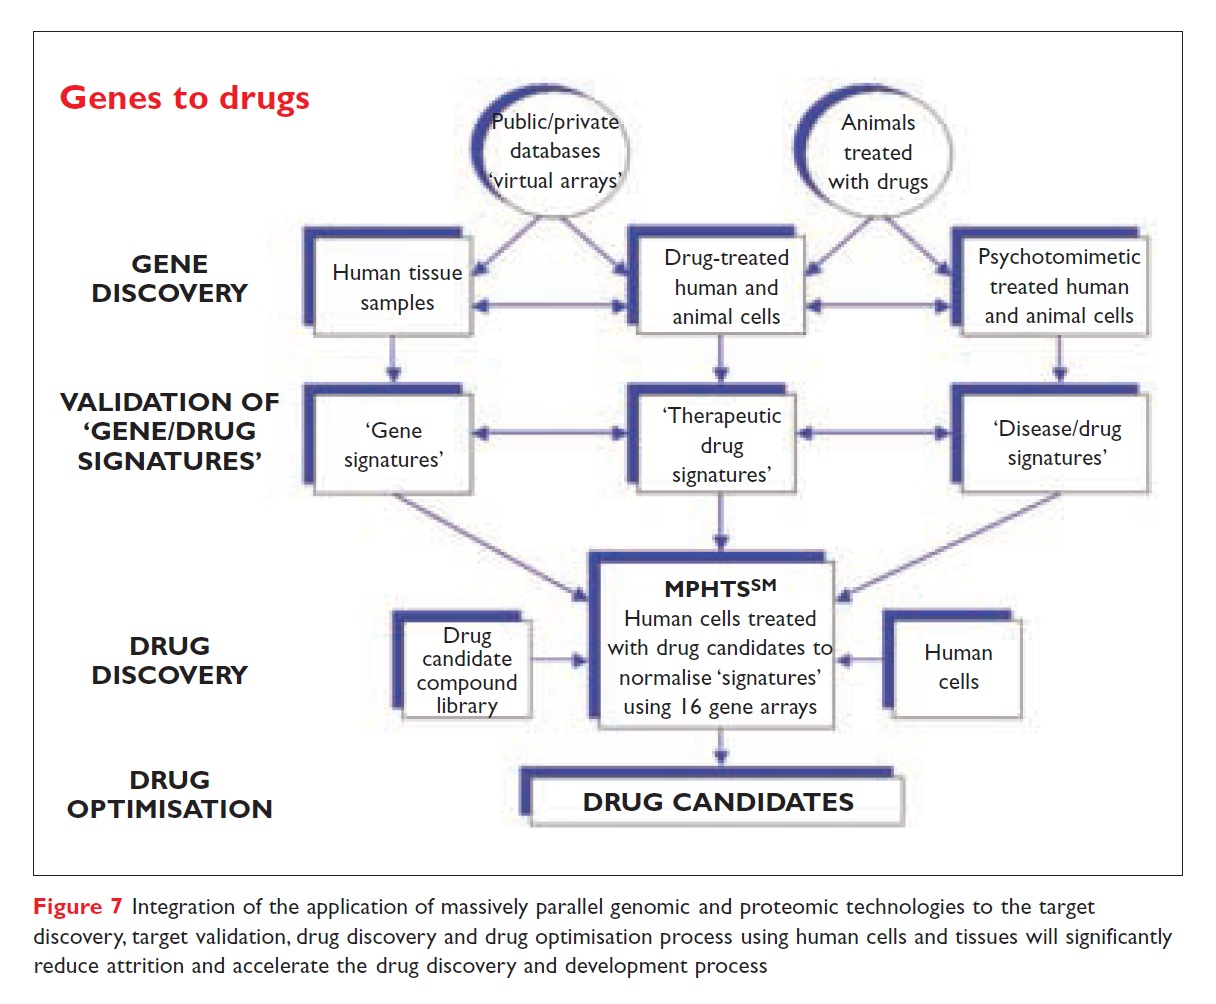 Figure 7 Genes to drugs, integration of the application of parallel genomic and proteomic technologies